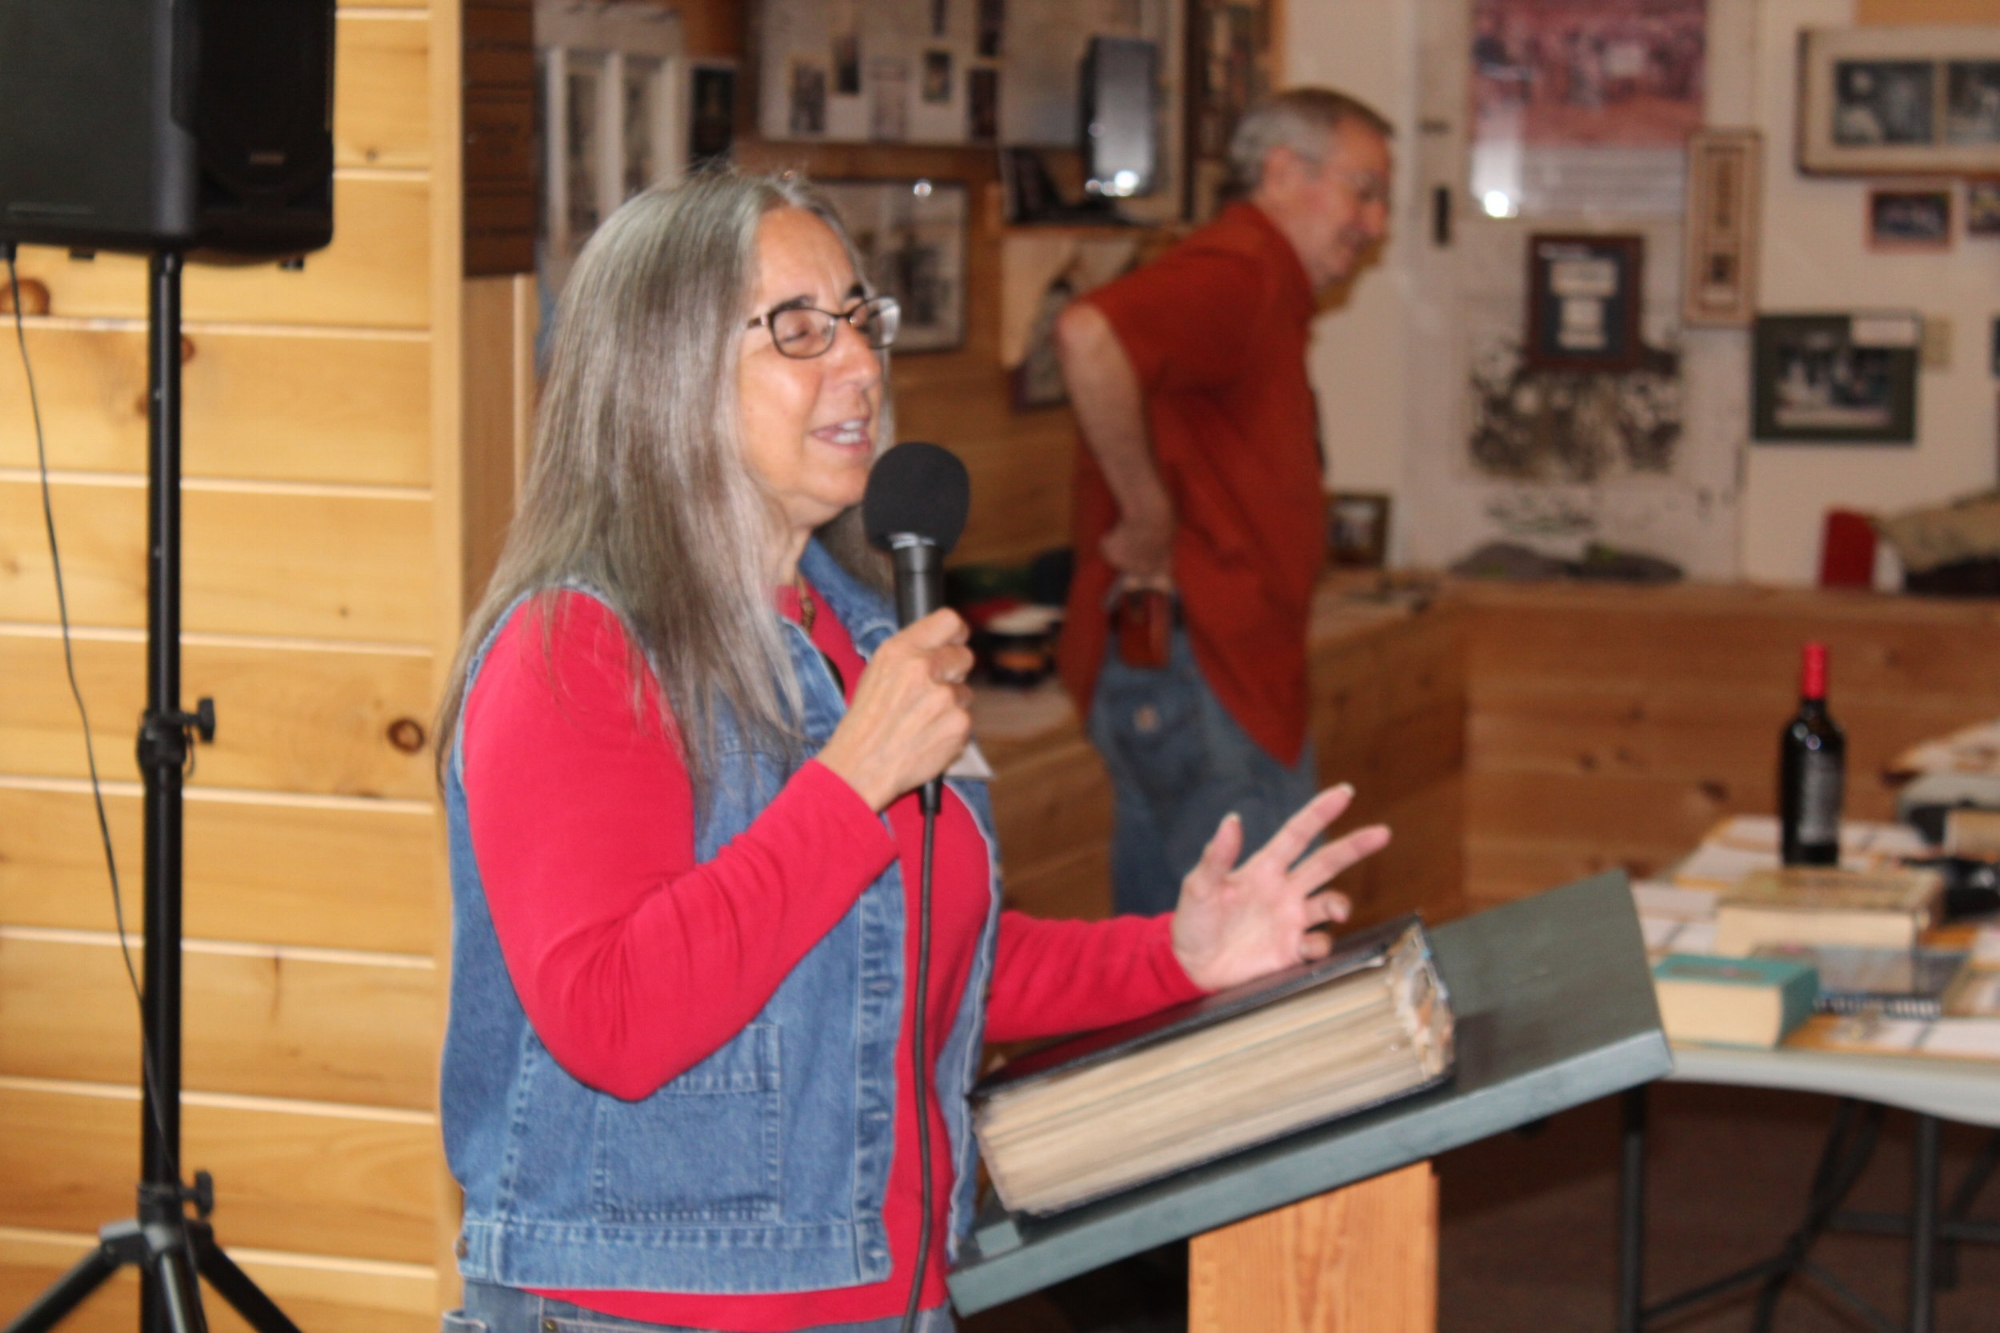 Kathy Scott talks about her book, The Letters to Everett Garrison, at the 24th annual Catskill Rodmakers Gathering, which drew more than 100 enthusiastic rod builders to the Catskill Fly Fishing Center & Museum Sept. 7-9. Scott's book on the legendary rod maker is available at the CFFCM book shop, and an interview with Scott will be posted at  cffcm.com .